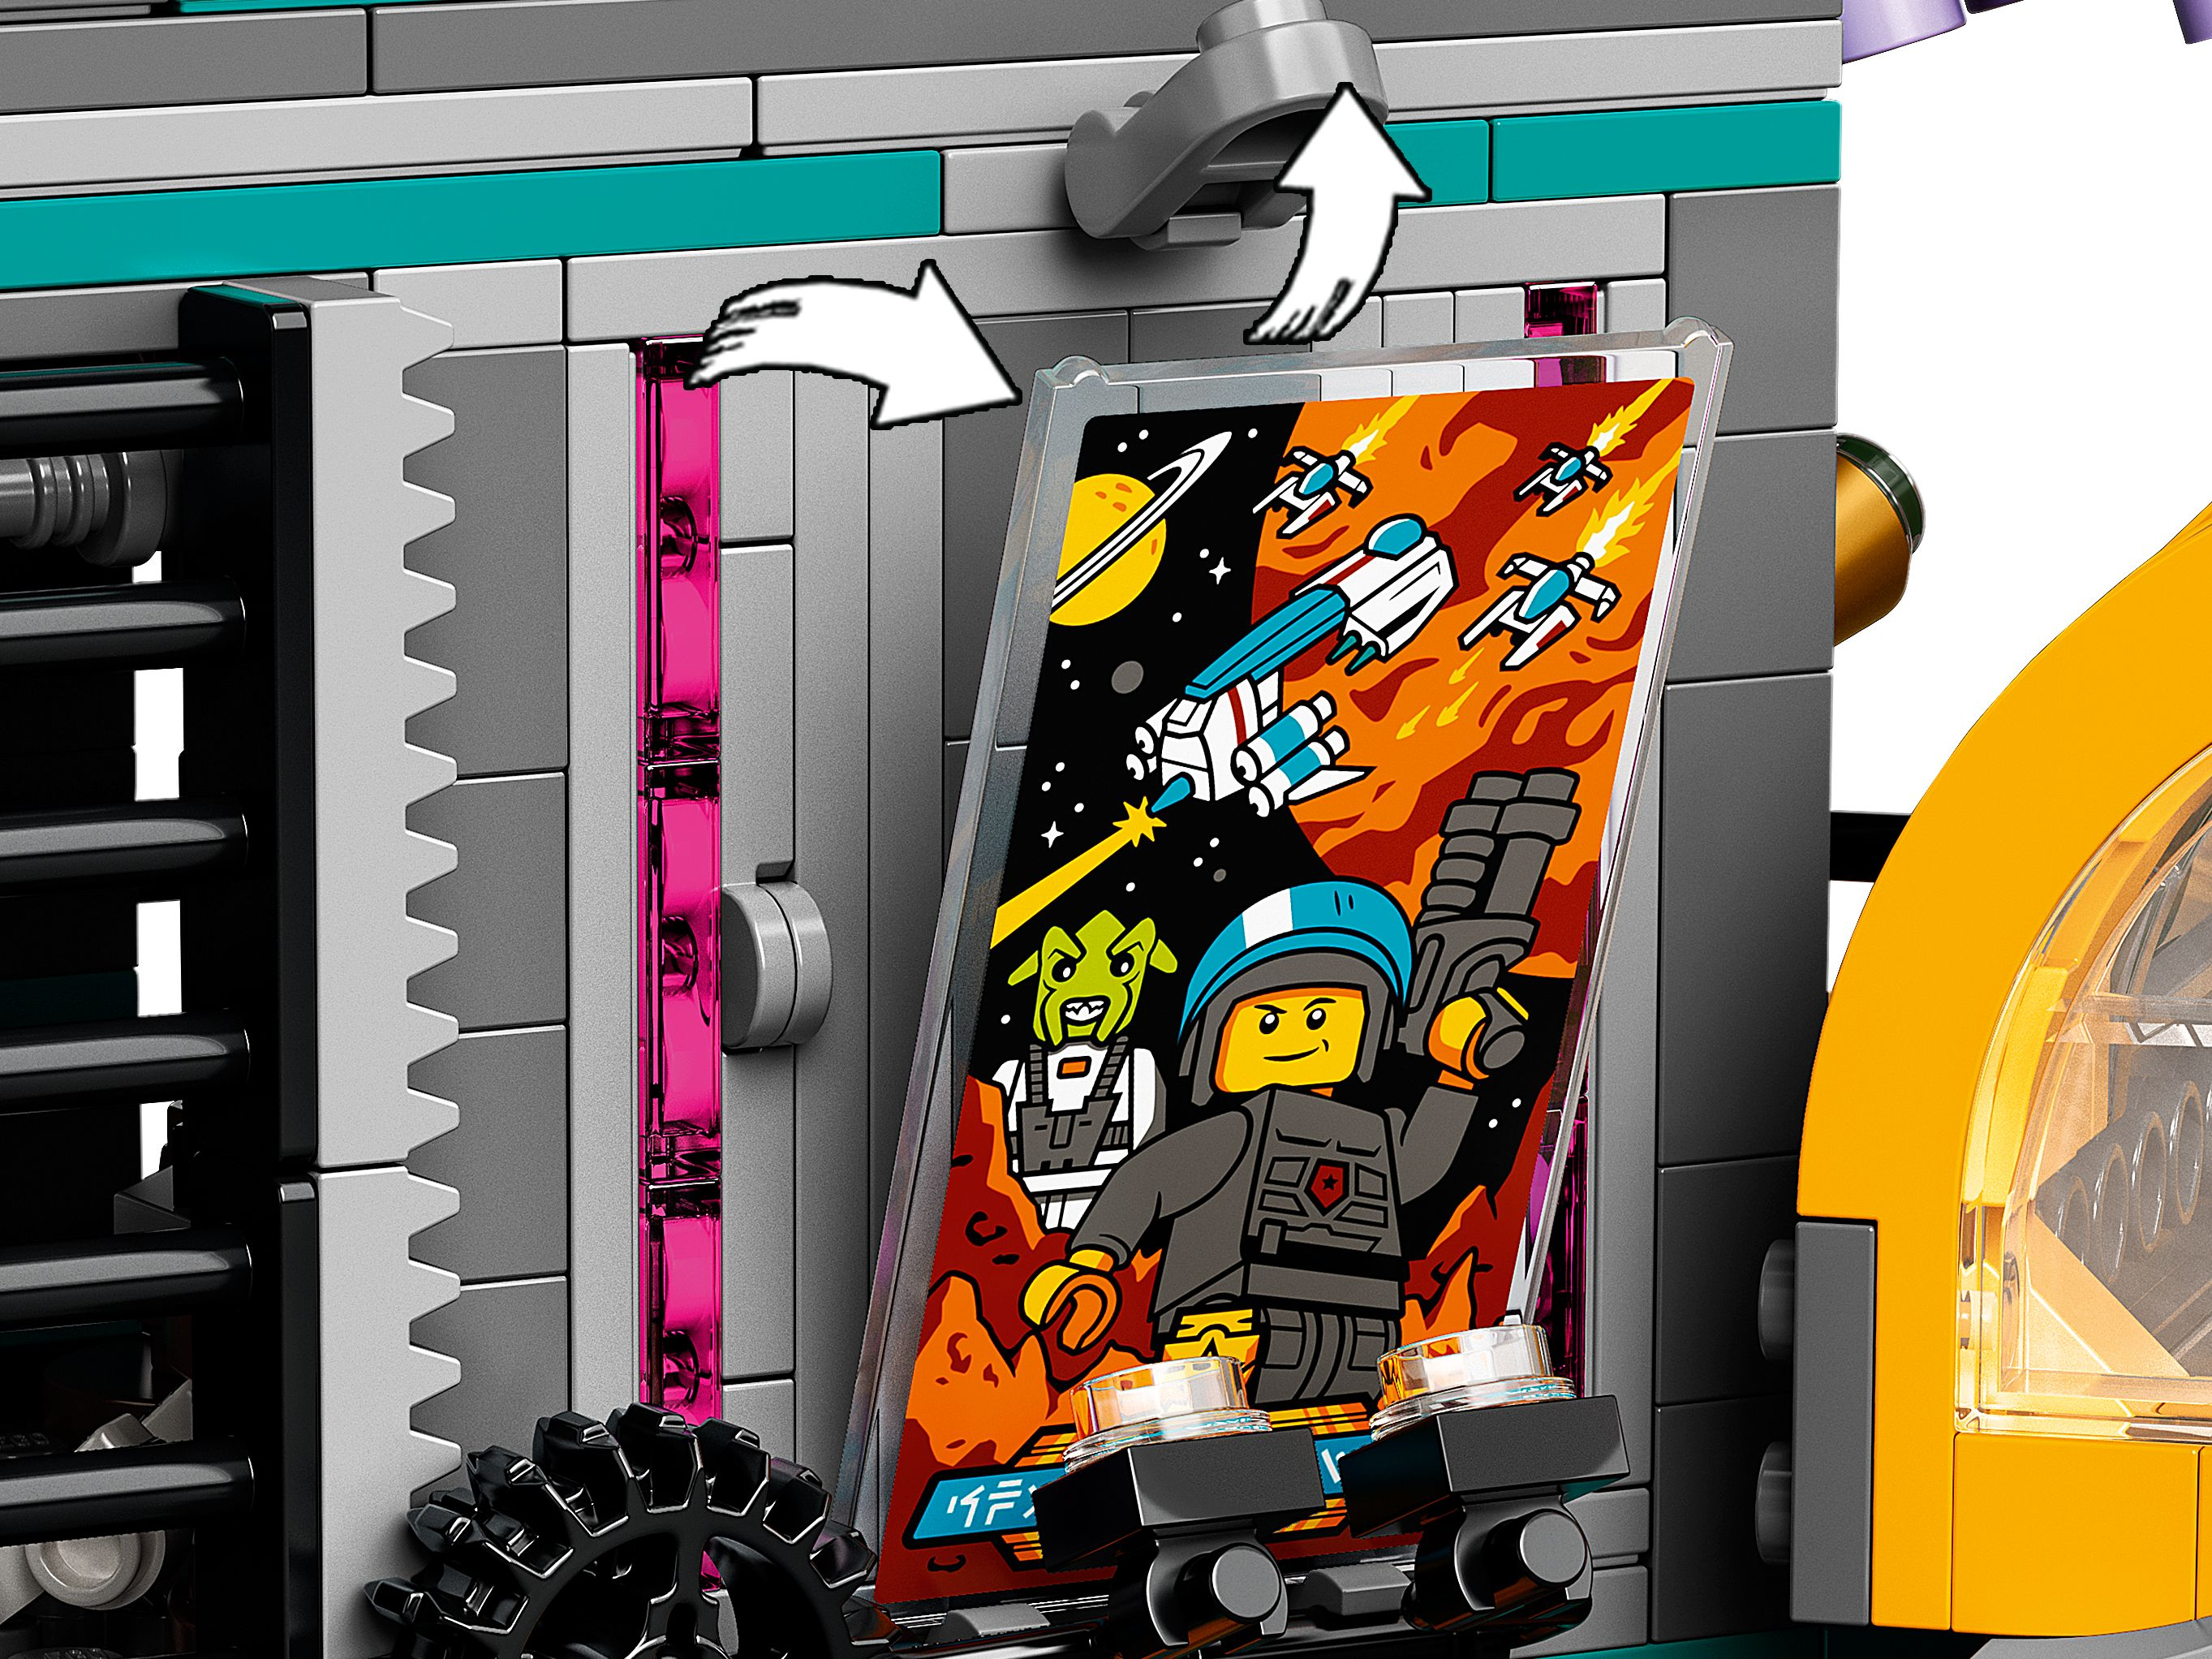 LEGO The LEGO Ninjago Movie 71741 Die Gärten von Ninjago City LEGO_71741_alt9.jpg